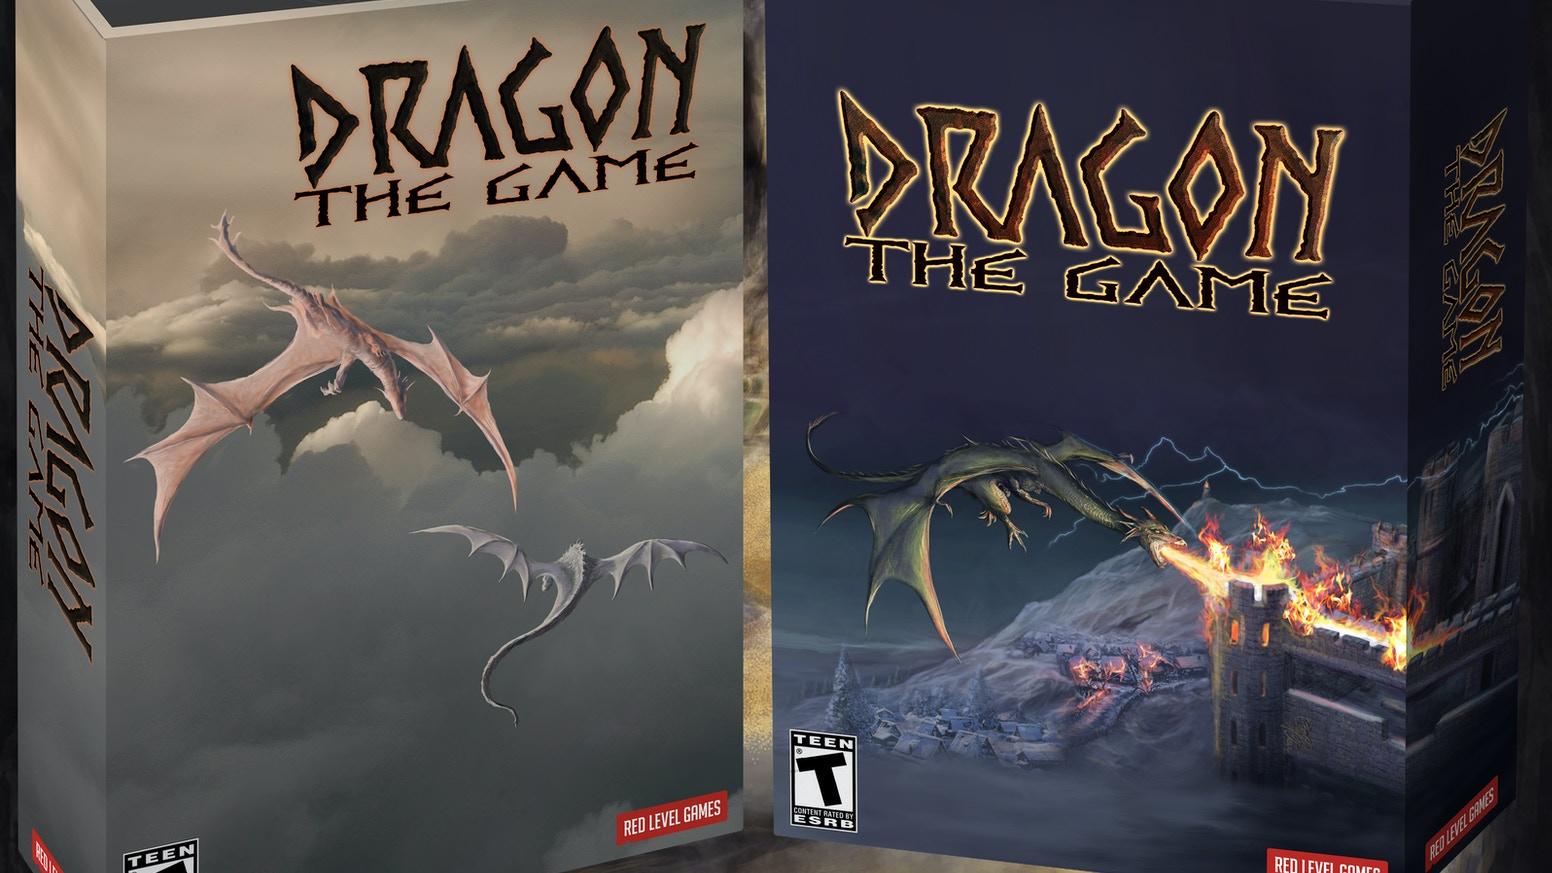 Dragon: The Game by Grant Williams -- Red Level Games